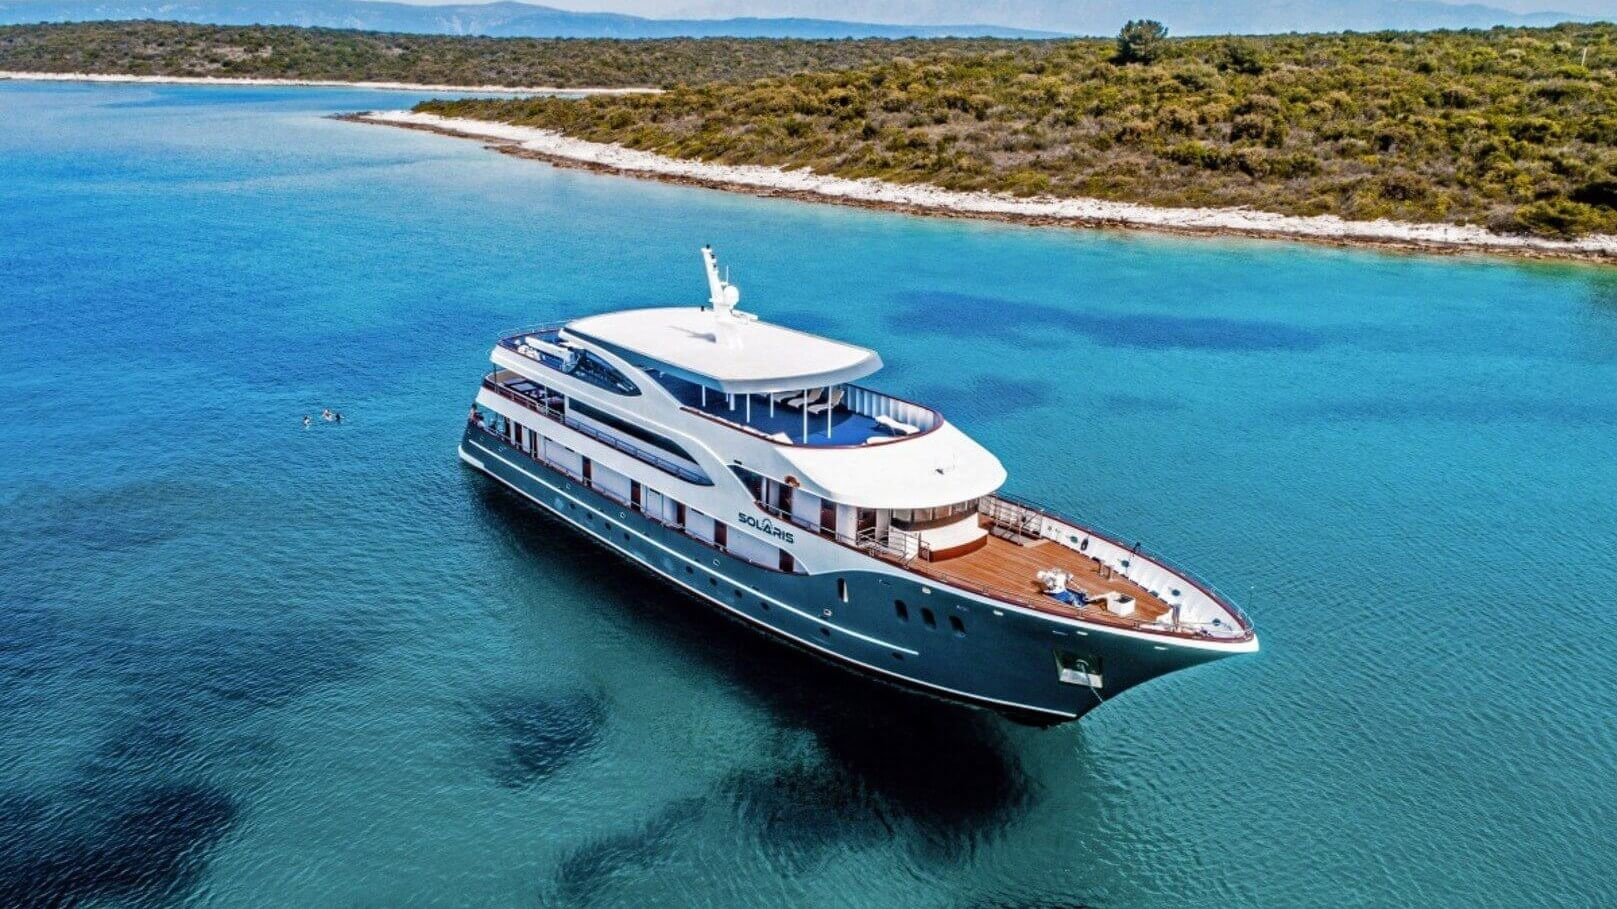 Solaris | Croatia Holidays Croatia Cruise